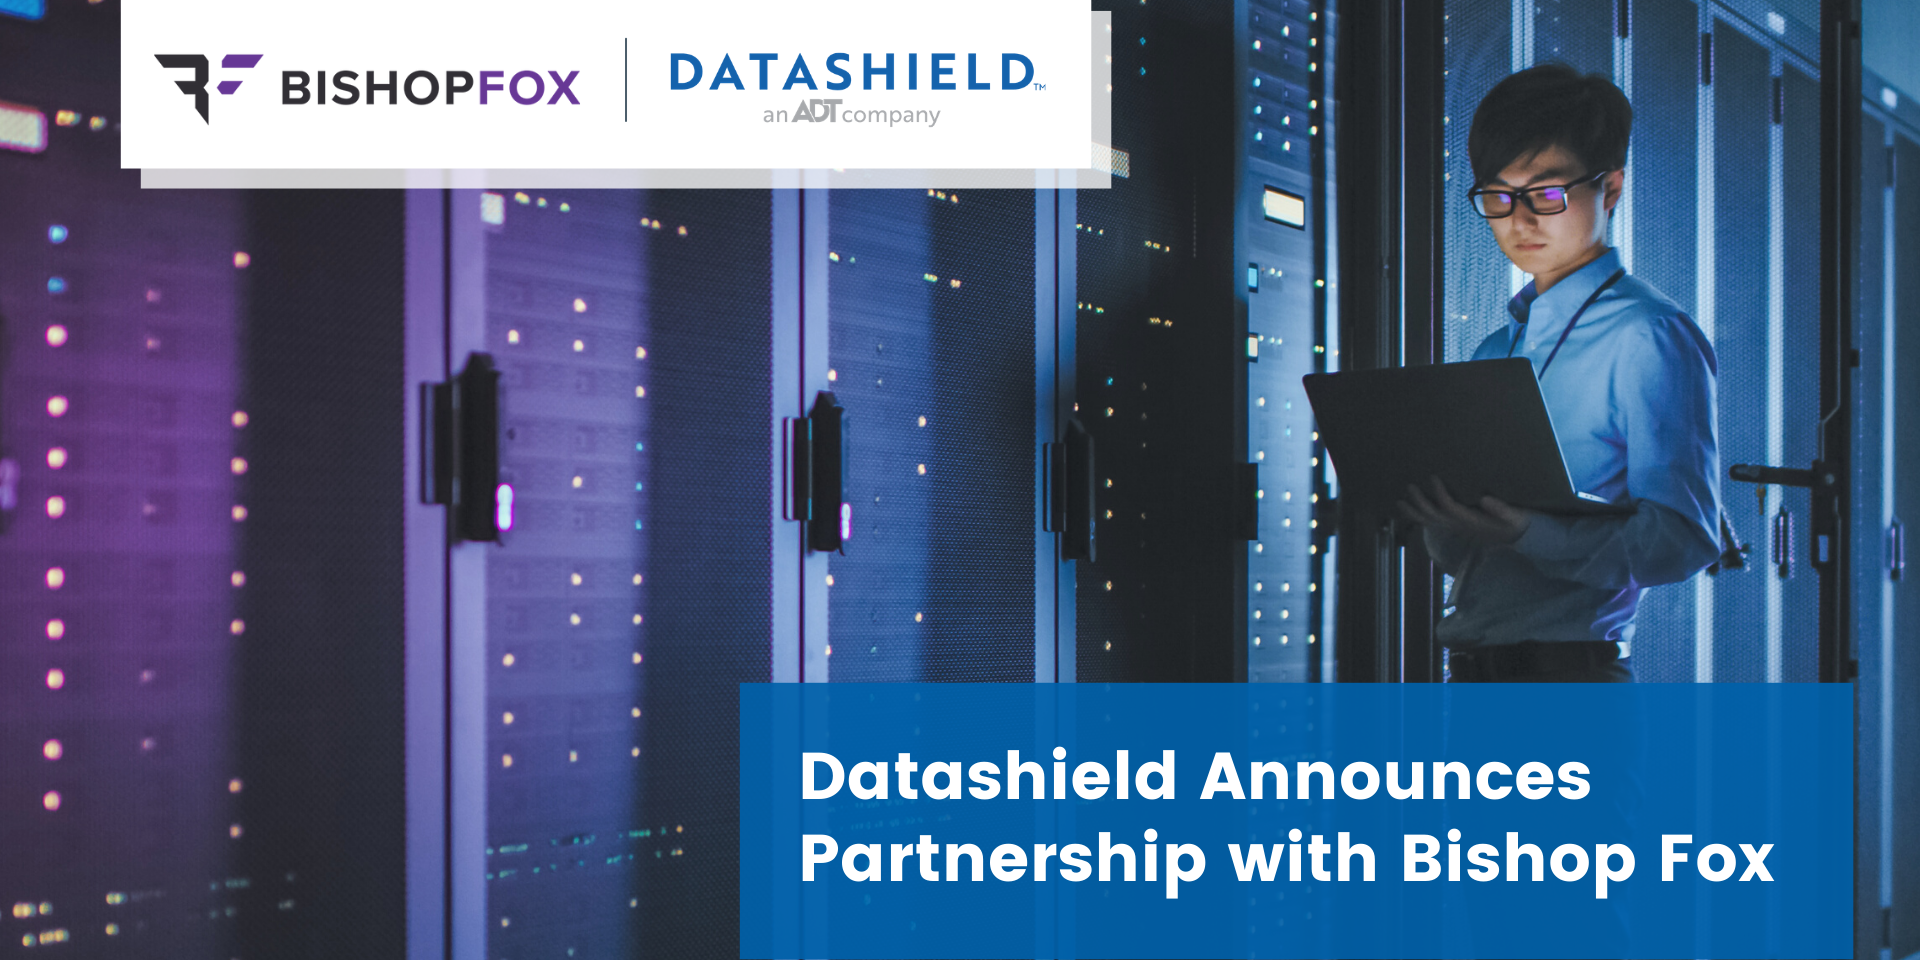 Datashield Announces Partnership with Bishop Fox